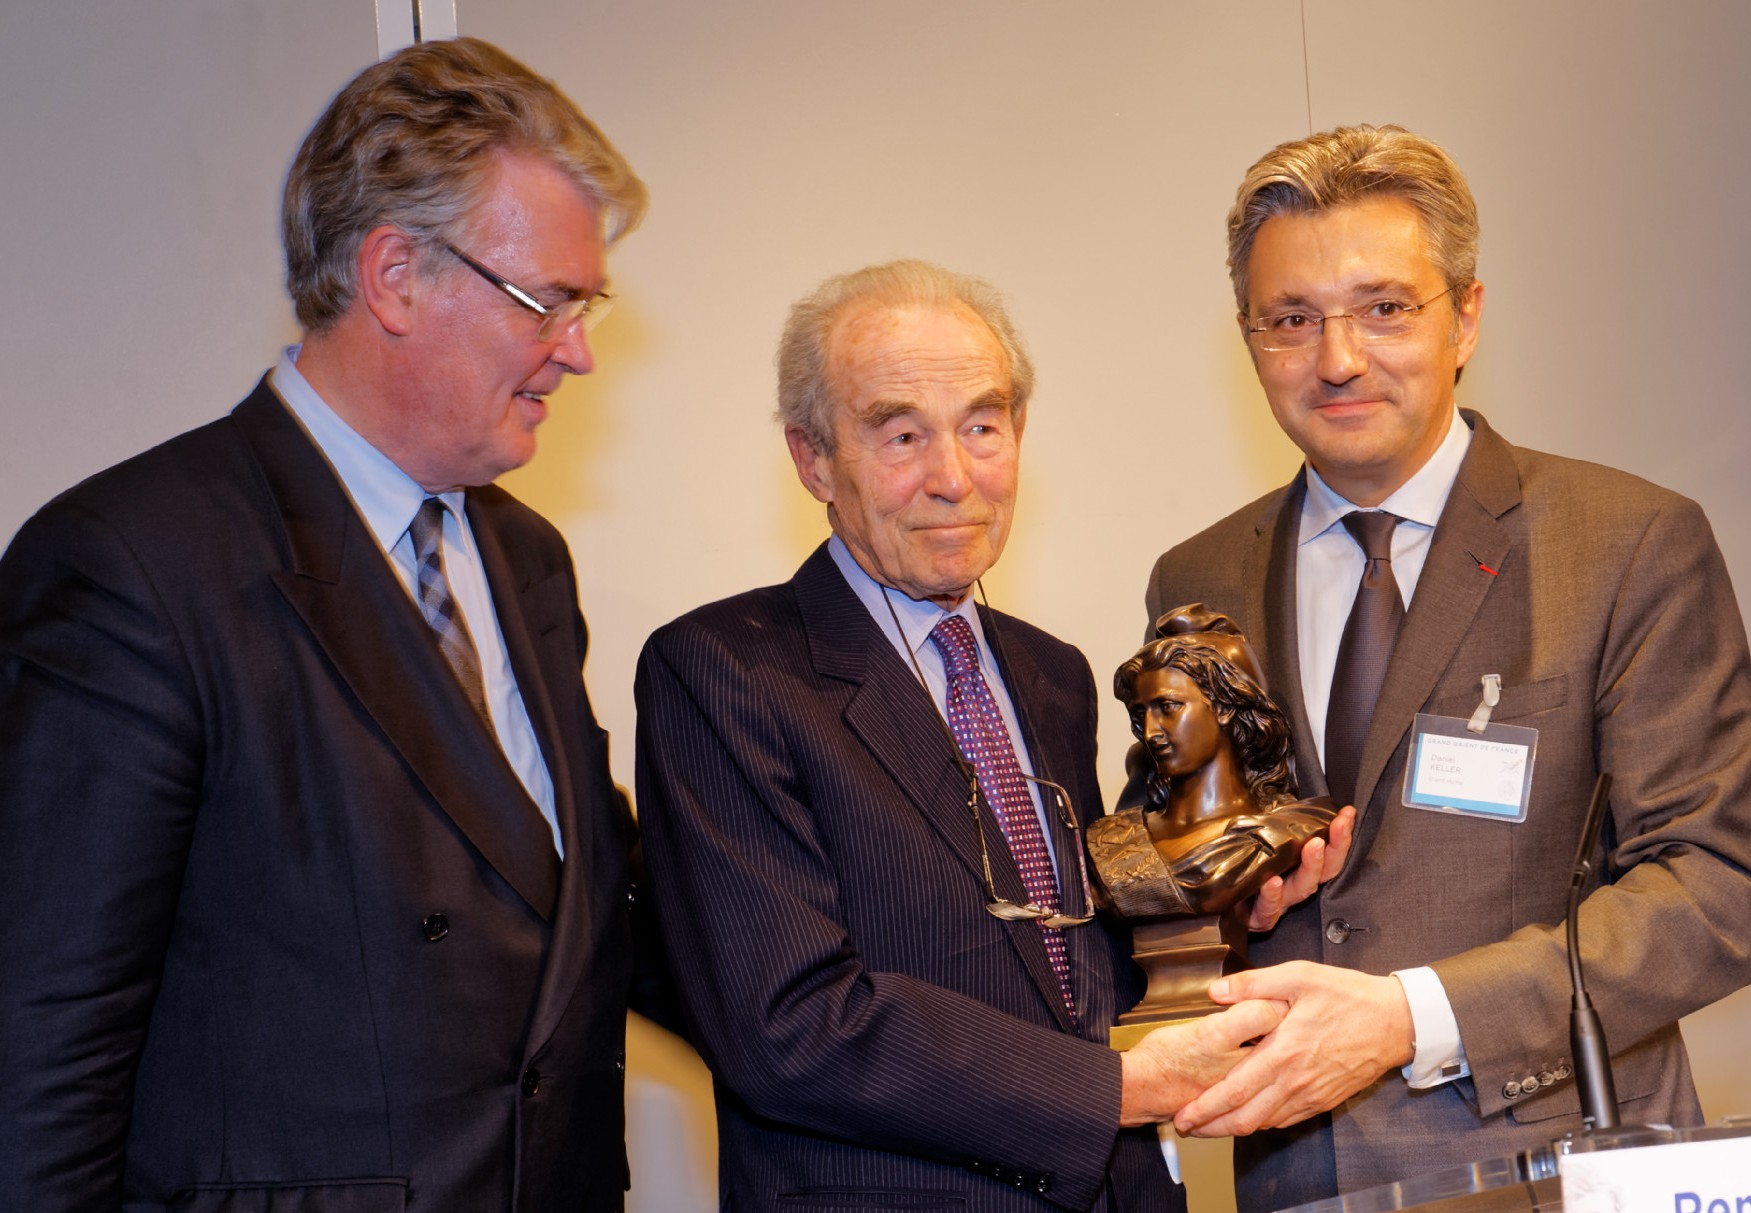 Jean-Paul Delevoye, Robert Badinter et Daniel Keller (Photo Ronan Loaec, GODF)